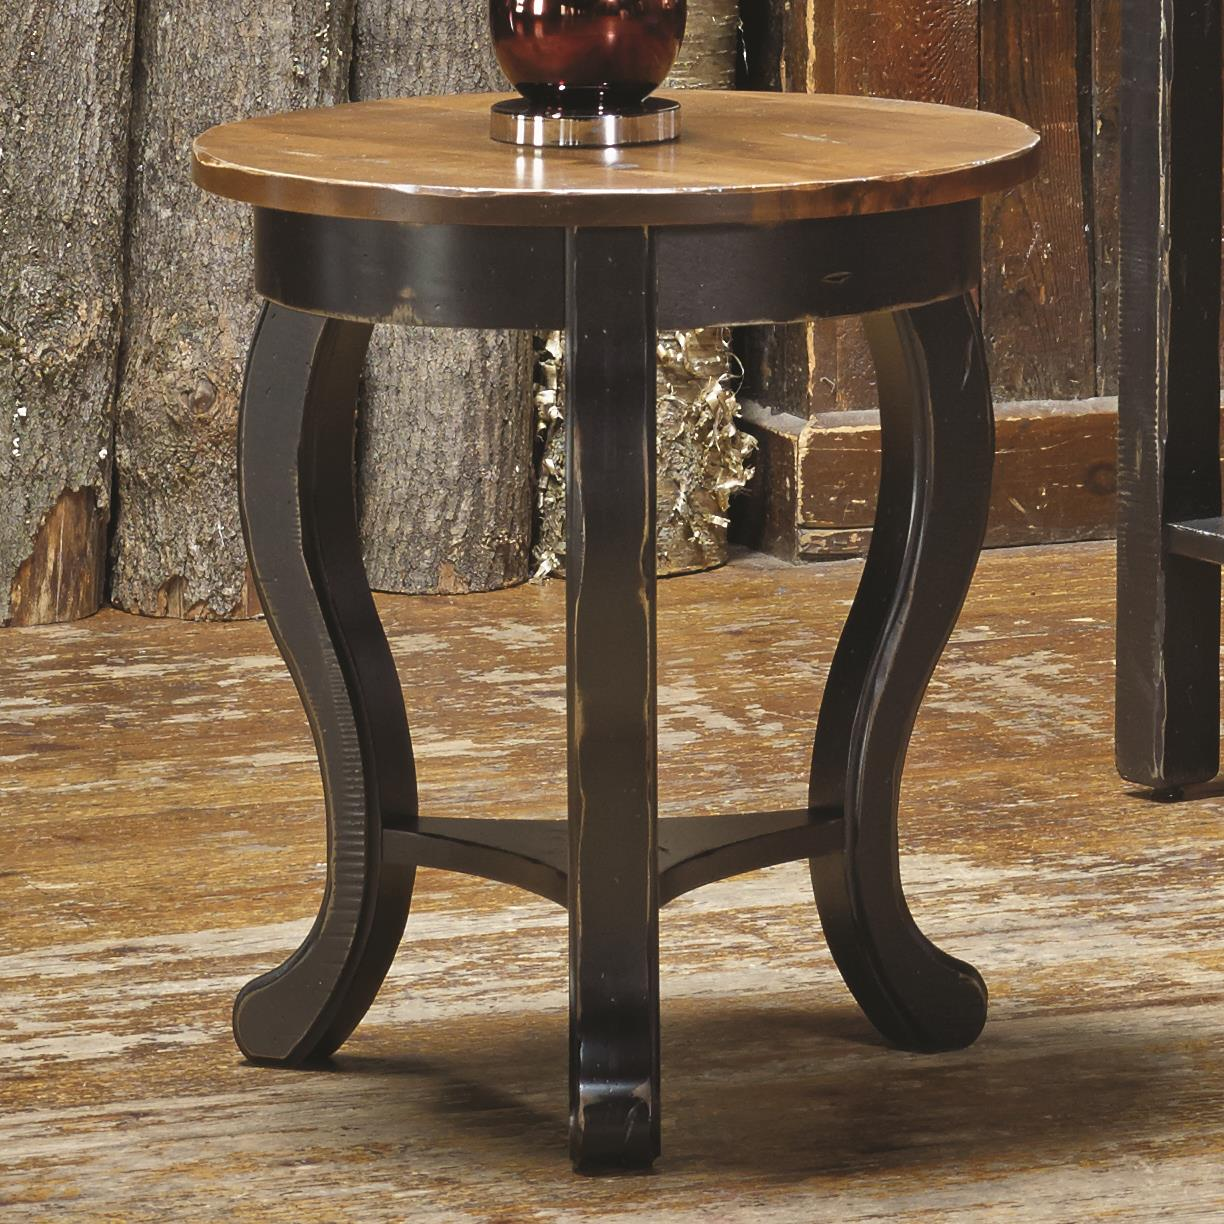 Champlain - Living <b>Customizable</b> Round End Table by Canadel at Jordan's Home Furnishings